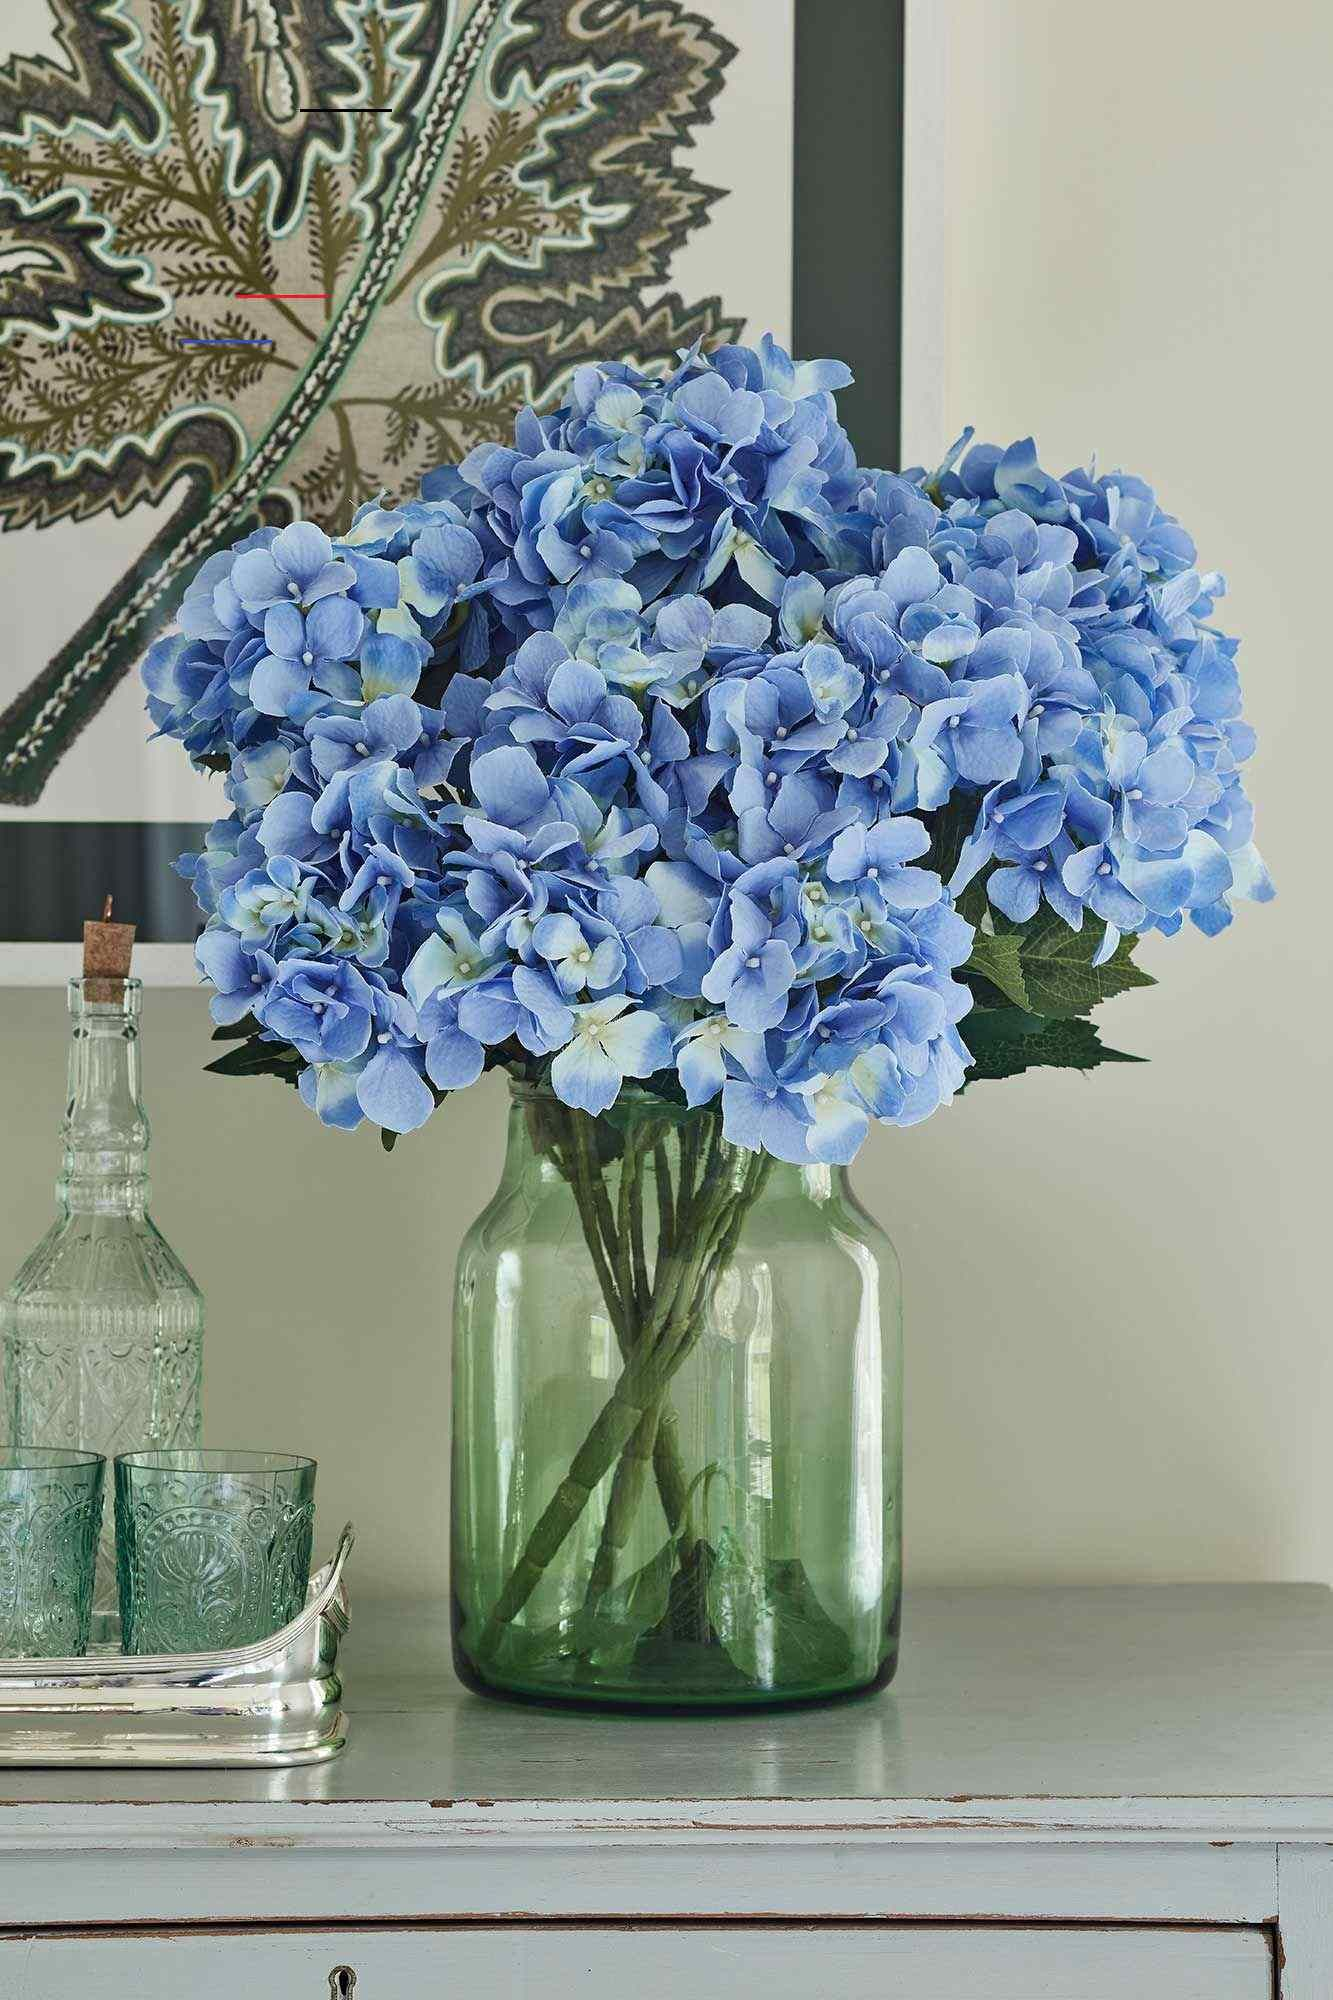 Pin By Aminath Christine On Microwedding In 2020 Blue Hydrangea Flowers Hydrangea Flower Arrangements Peonies And Hydrangeas